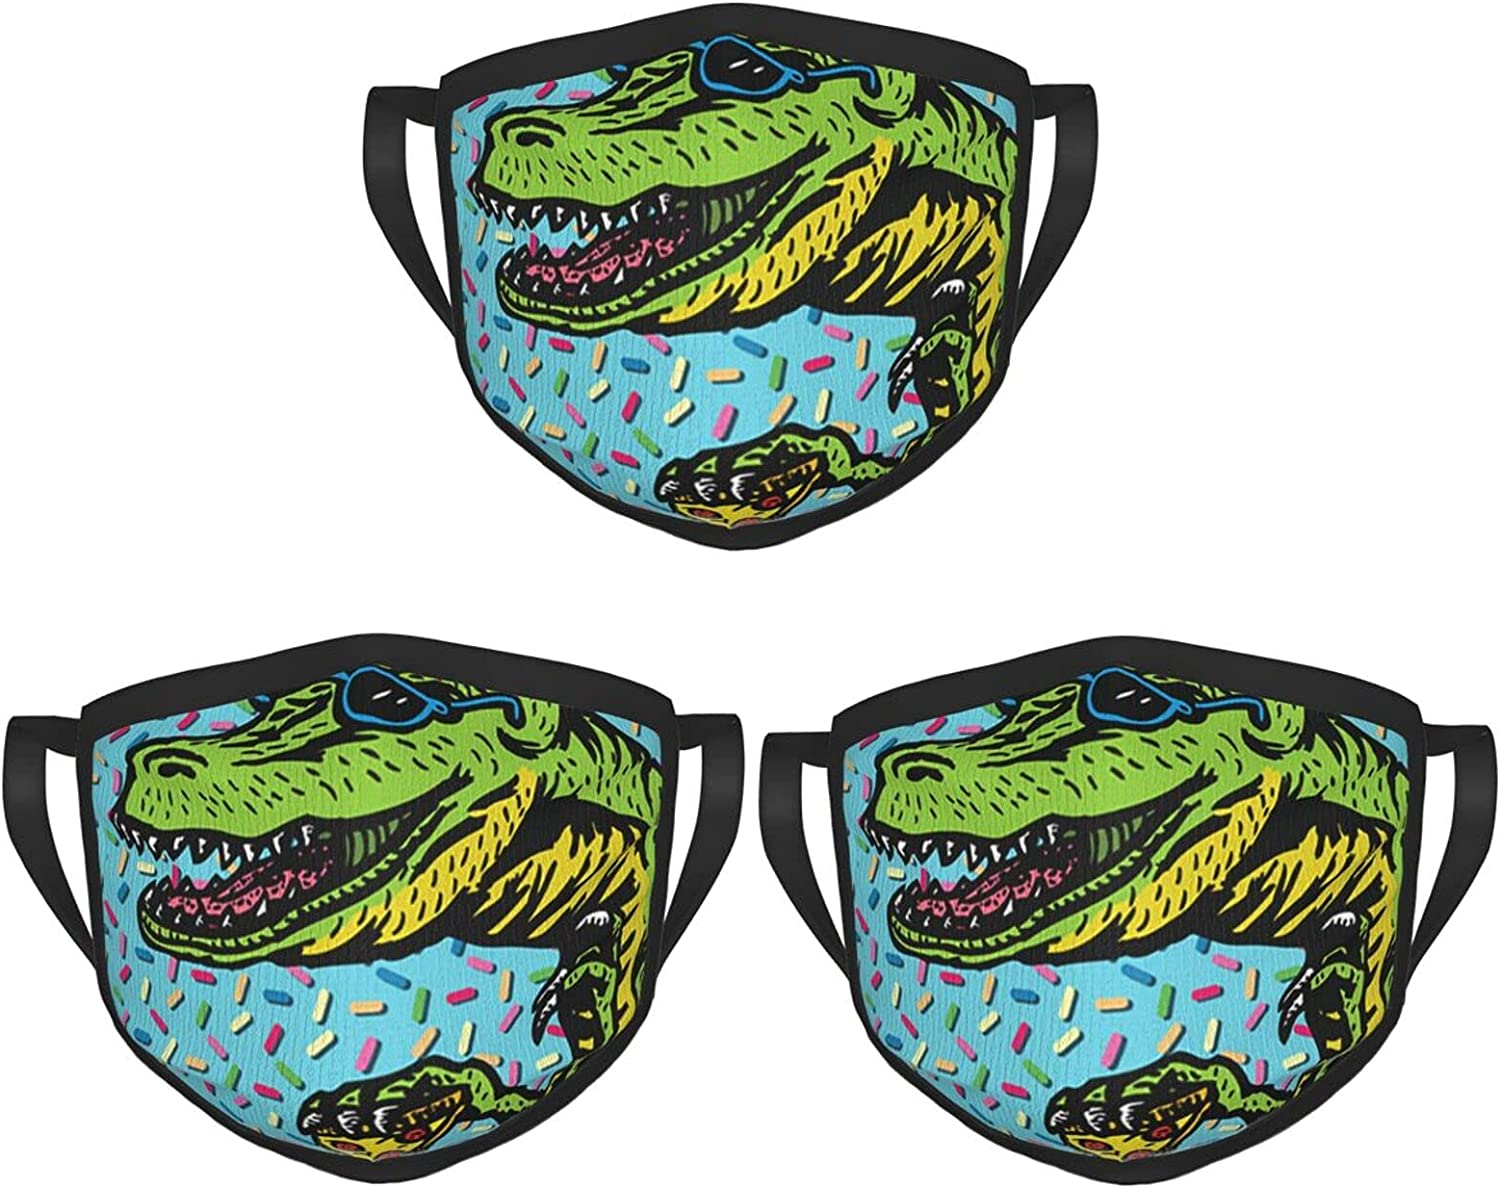 Balaclava Earmuffs Funny Saurus Rex With Glasses Eat Pizza Face Mouth Cover Mask Reusable Windproof Scarf Towel Cover Headwrap